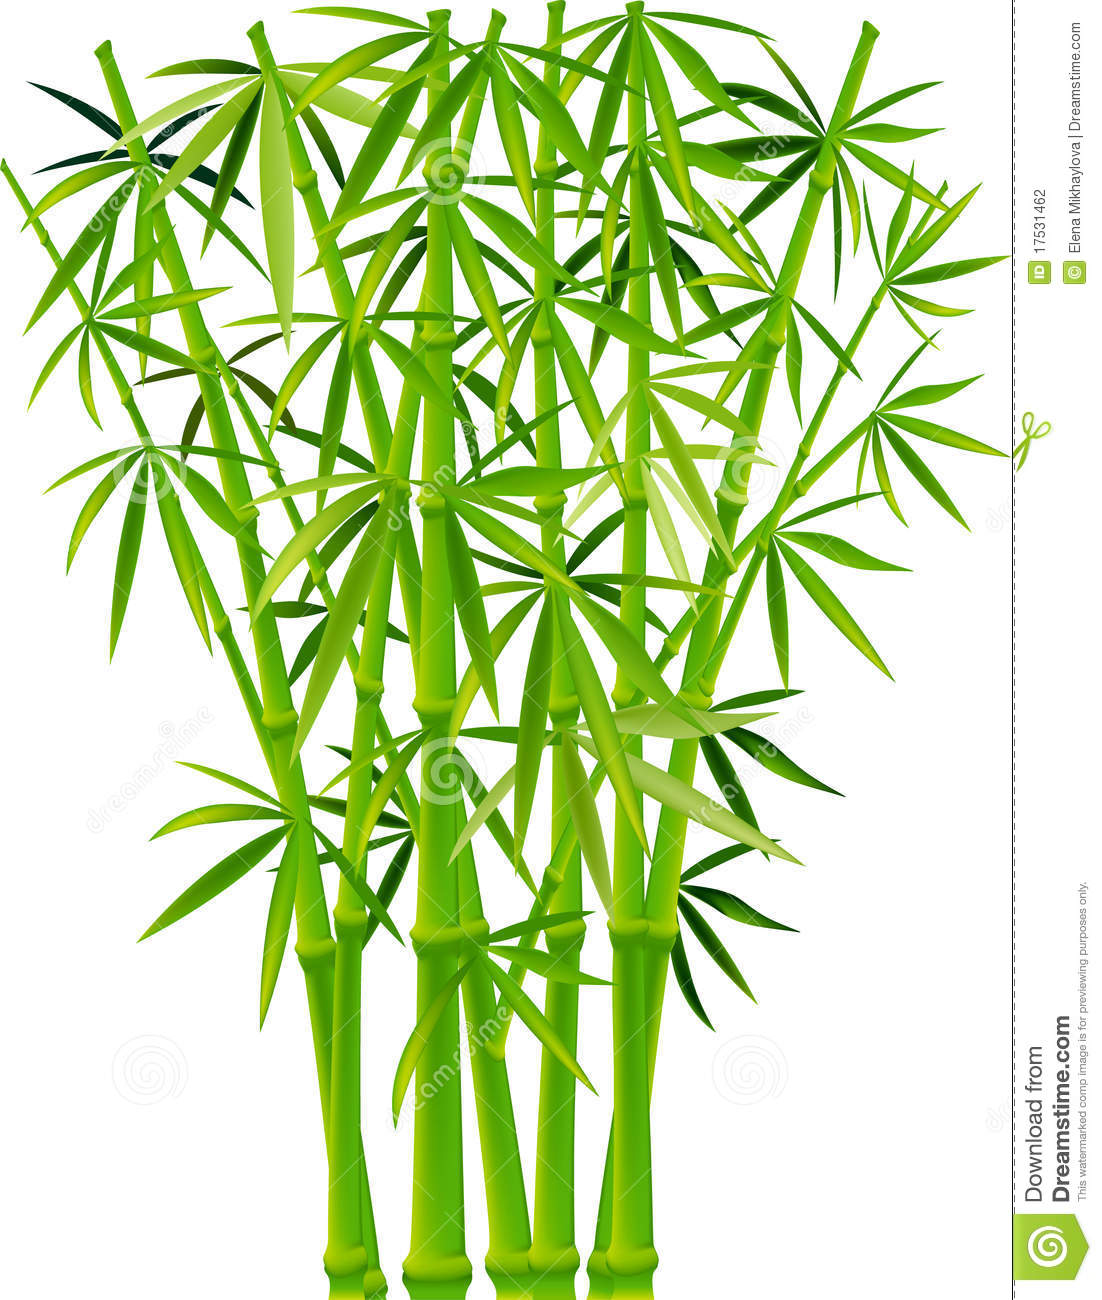 Bamboo Art Design : Bamboo stock vector illustration of image plant summer